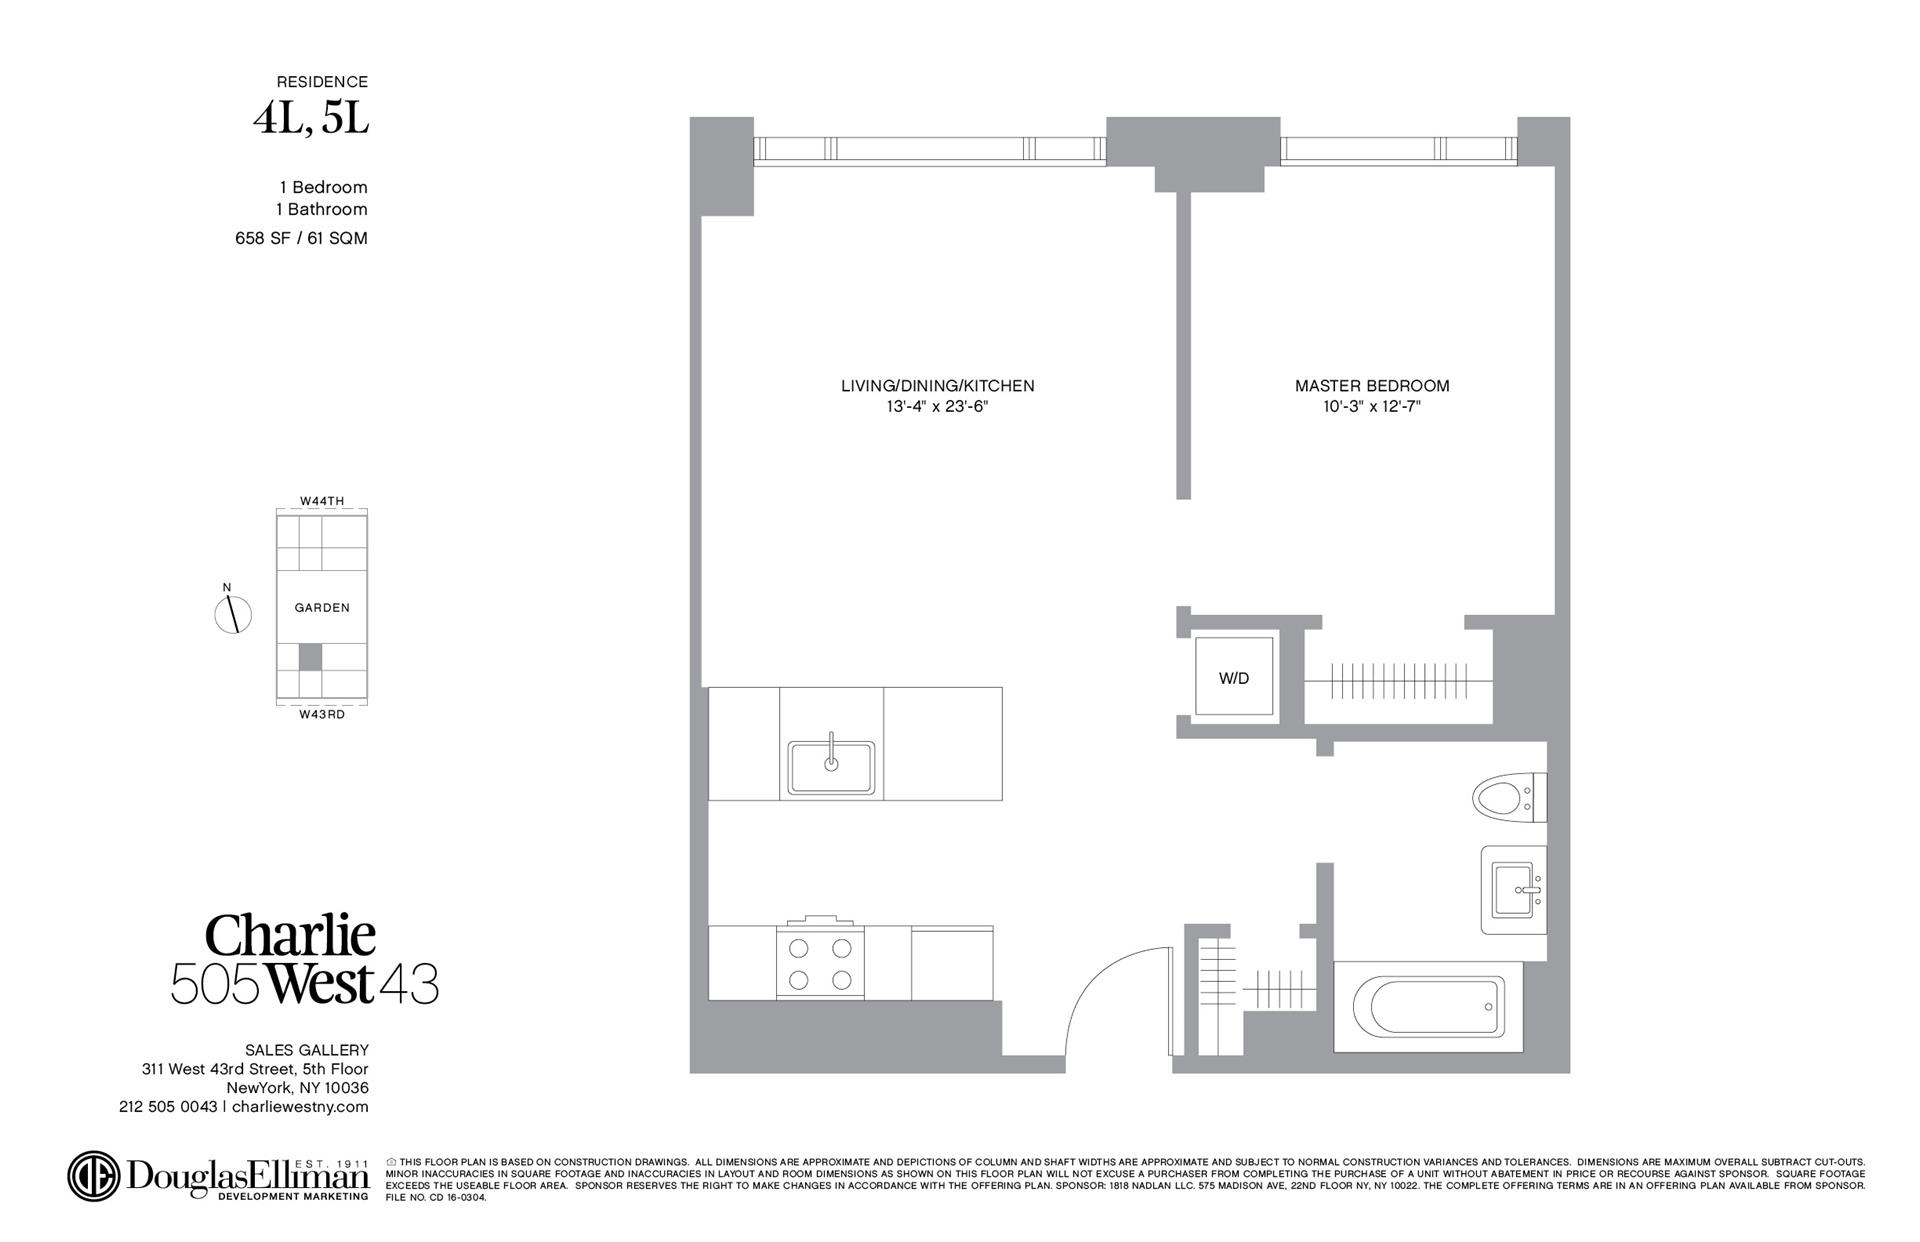 Floor plan of 505 West 43rd St, 5L - Clinton, New York